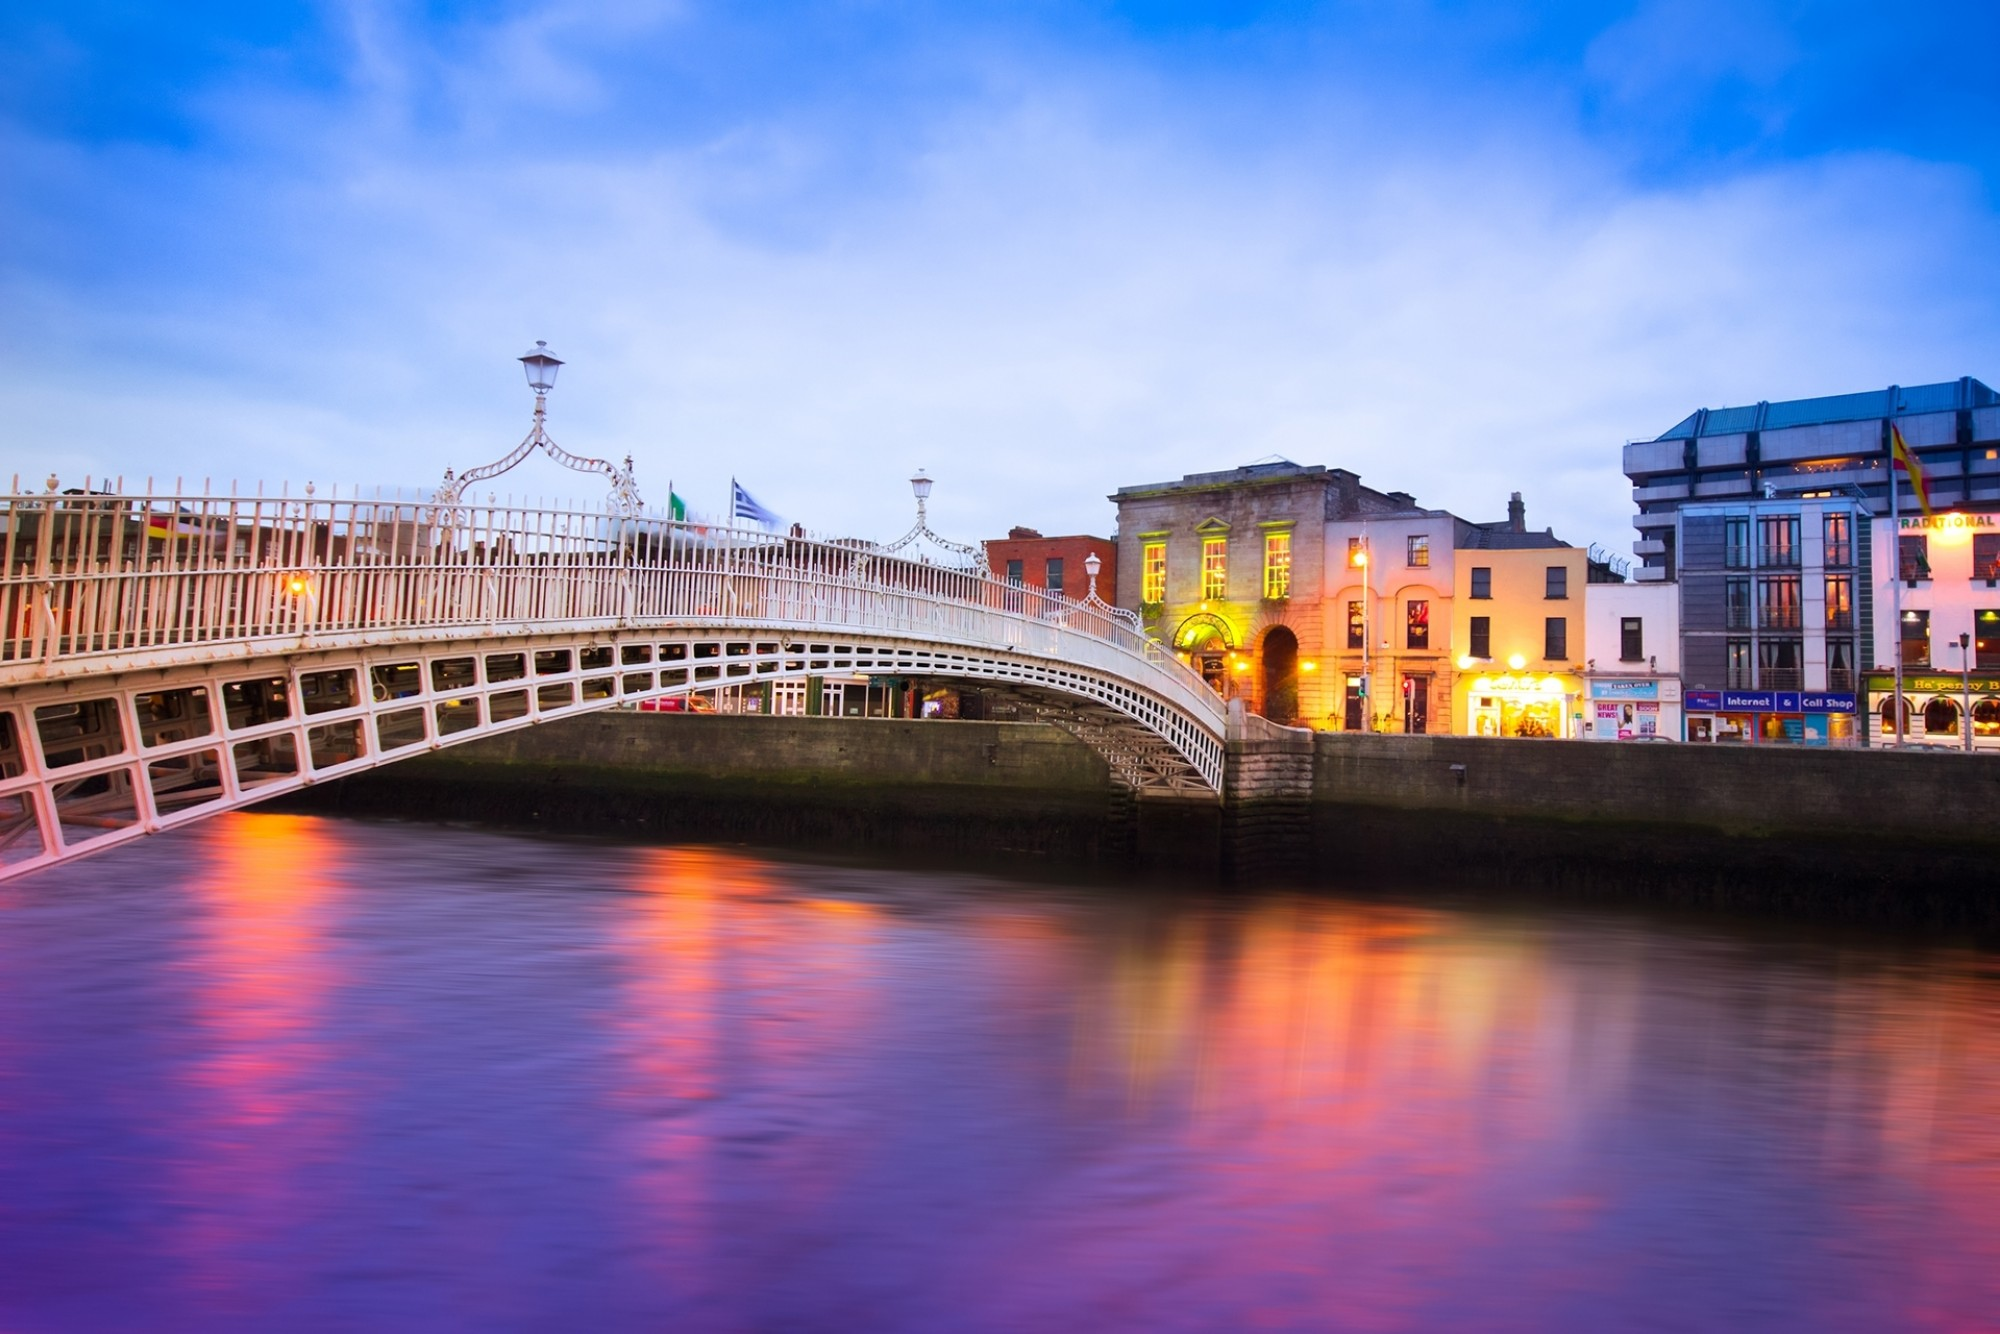 Dublin Ireland at dusk with waterfront and historic Hapenny Bridge